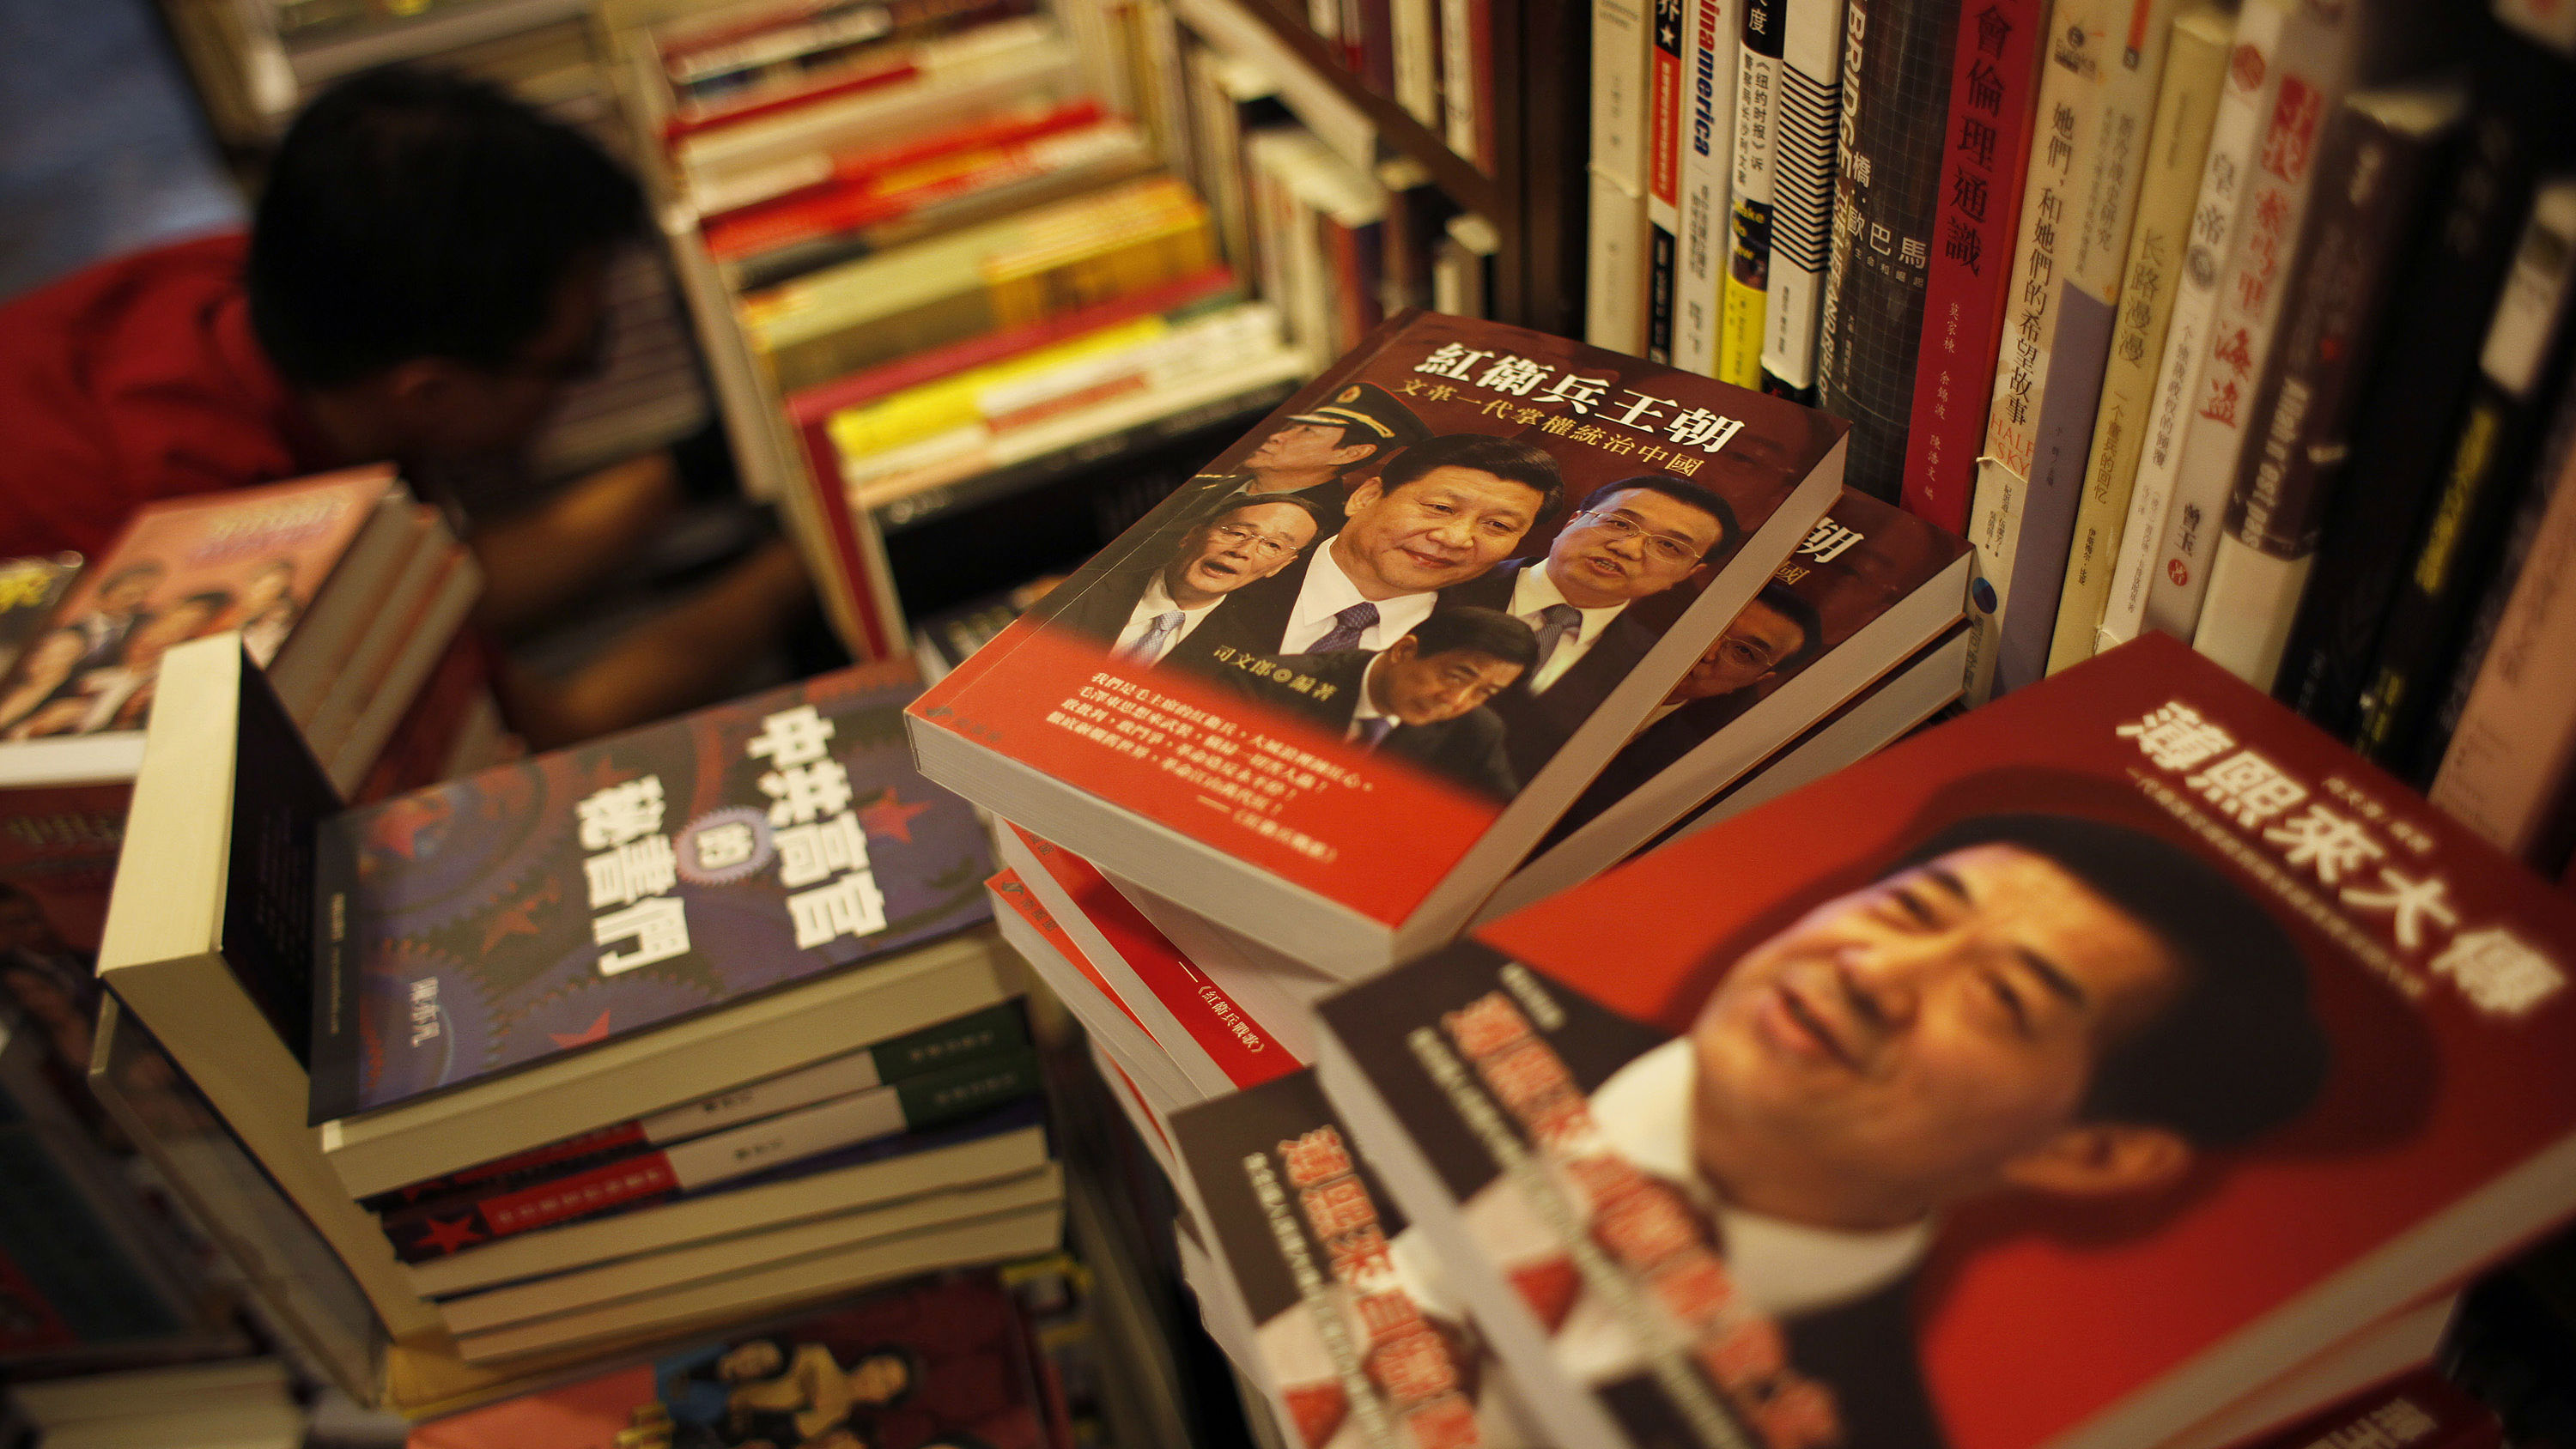 DATE IMPORTED:November 08, 2012Books on the arrested Chinese official Bo Xilai (R) and potential new Chinese leaders are displayed inside a bookstore in Hong Kong, which sells books that banned in mainland China, November 6, 2012. Books banned in China have been flying off the shelves in Hong Kong in the run-up to China's leadership transition as mainland people seek insight into the decision makers who will run their country and the rivals who have fallen out of favour. Picture taken November 6, 2012. REUTERS/Bobby Yip (CHINA - Tags: POLITICS SOCIETY)